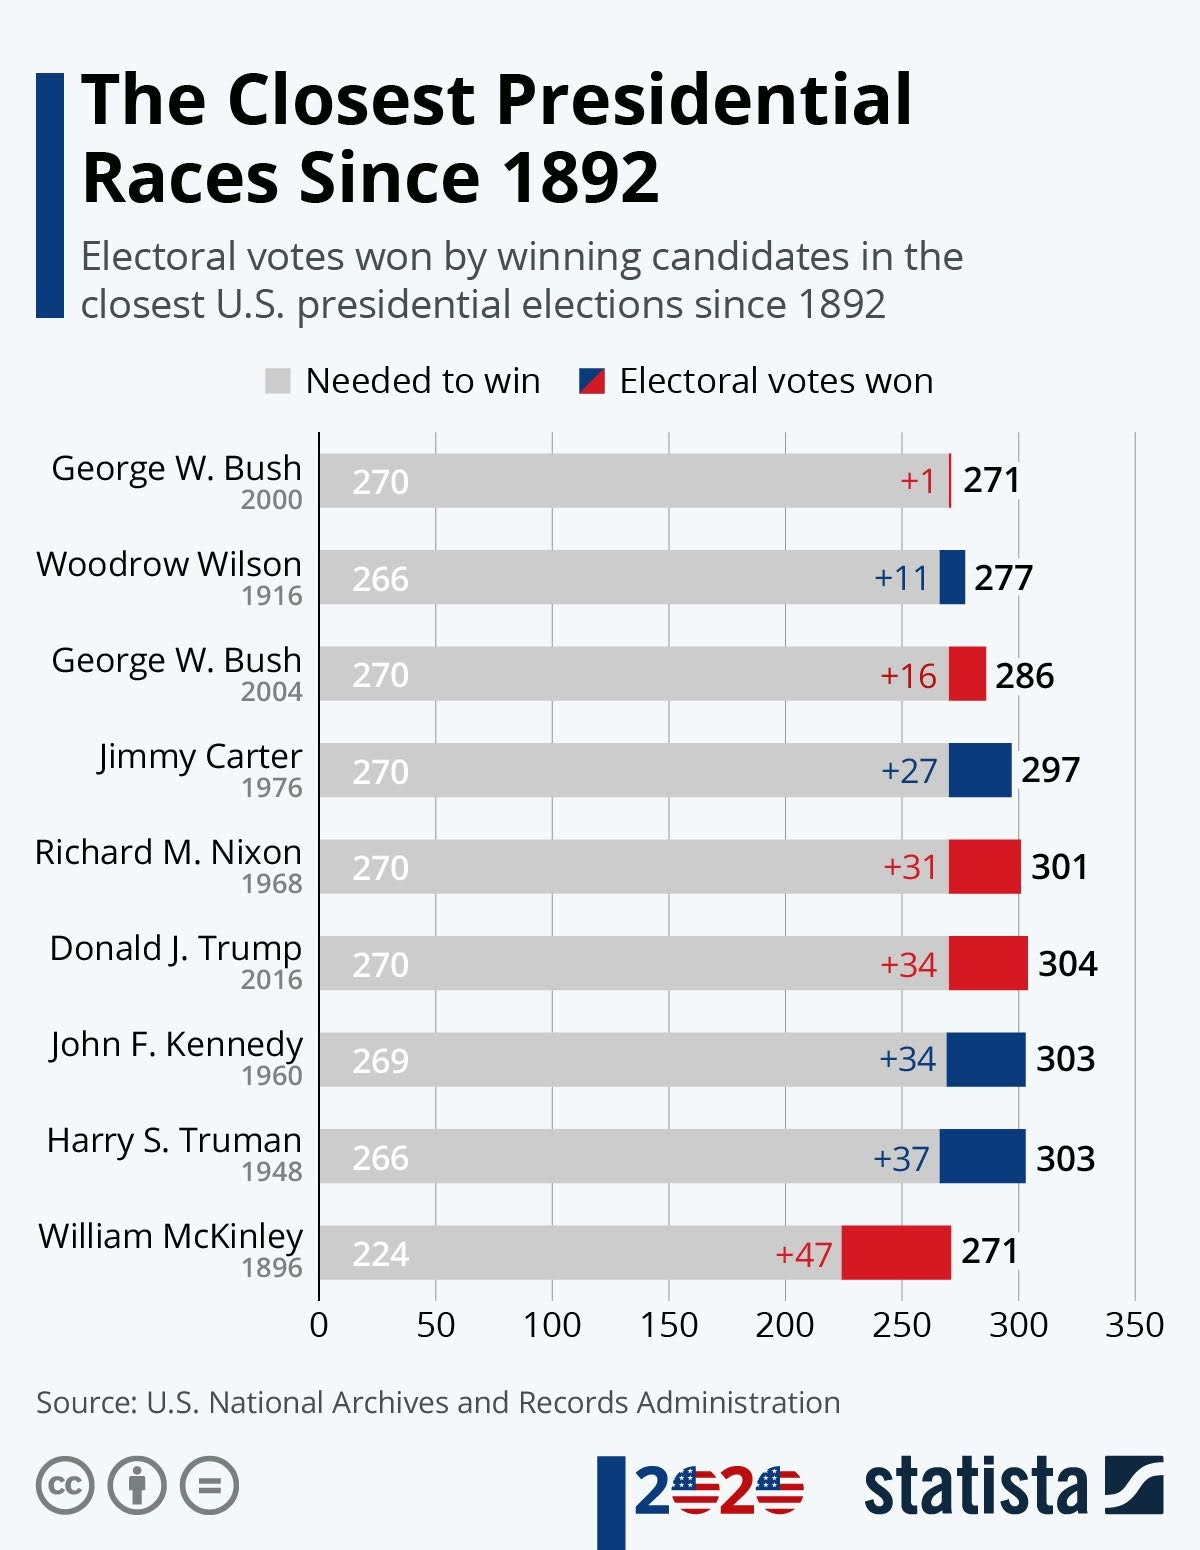 the-closest-presidential-races-since-1892-infographic